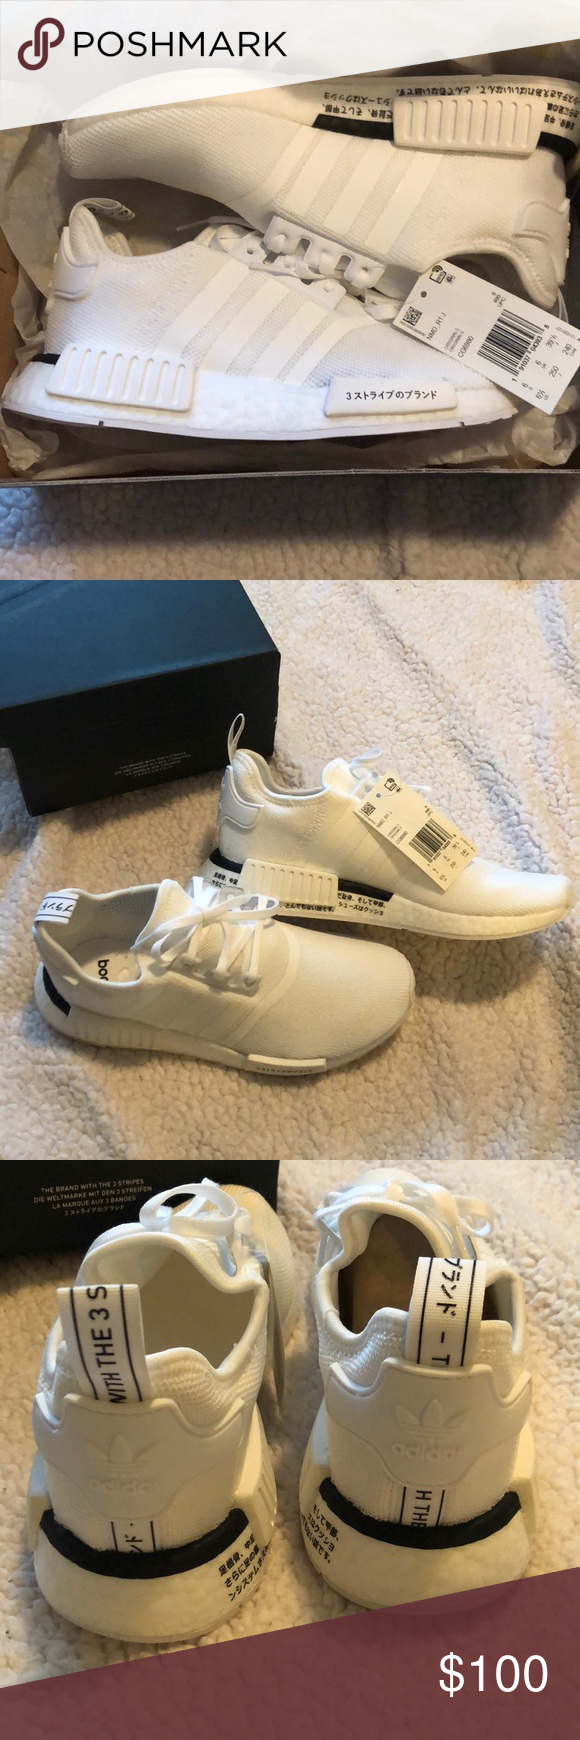 Adidas women, Nmd, Athletic shoes